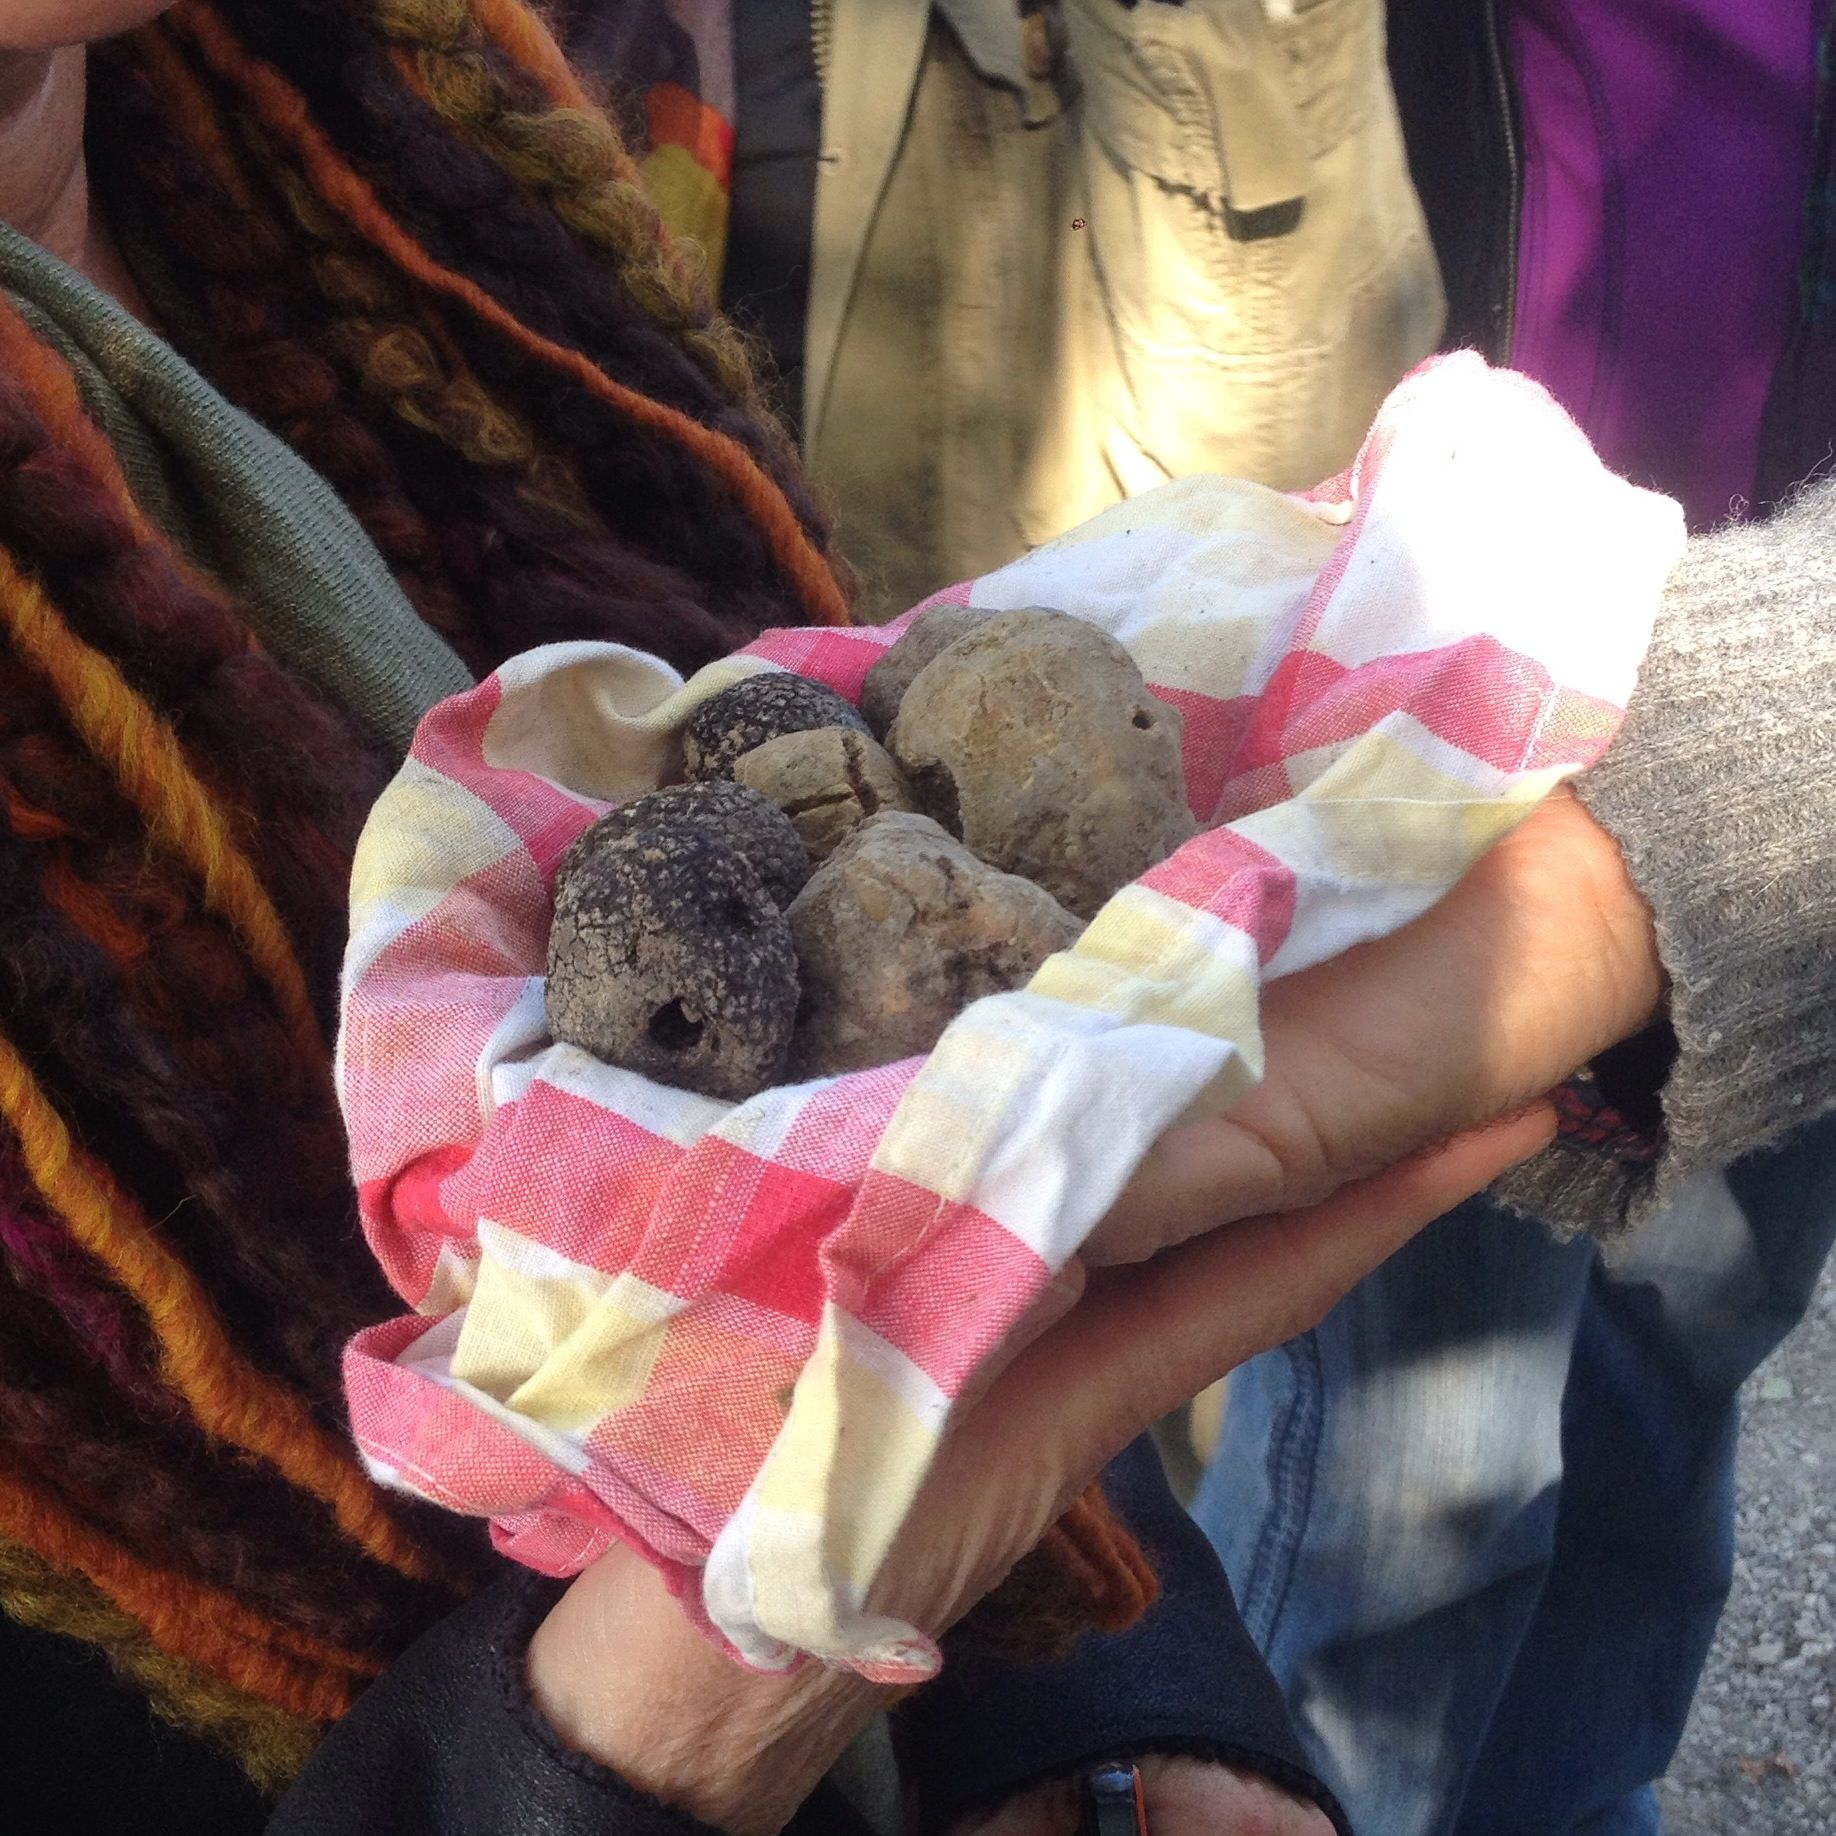 Truffle hunting in Alba, Morso Travel's food tour of Italy.